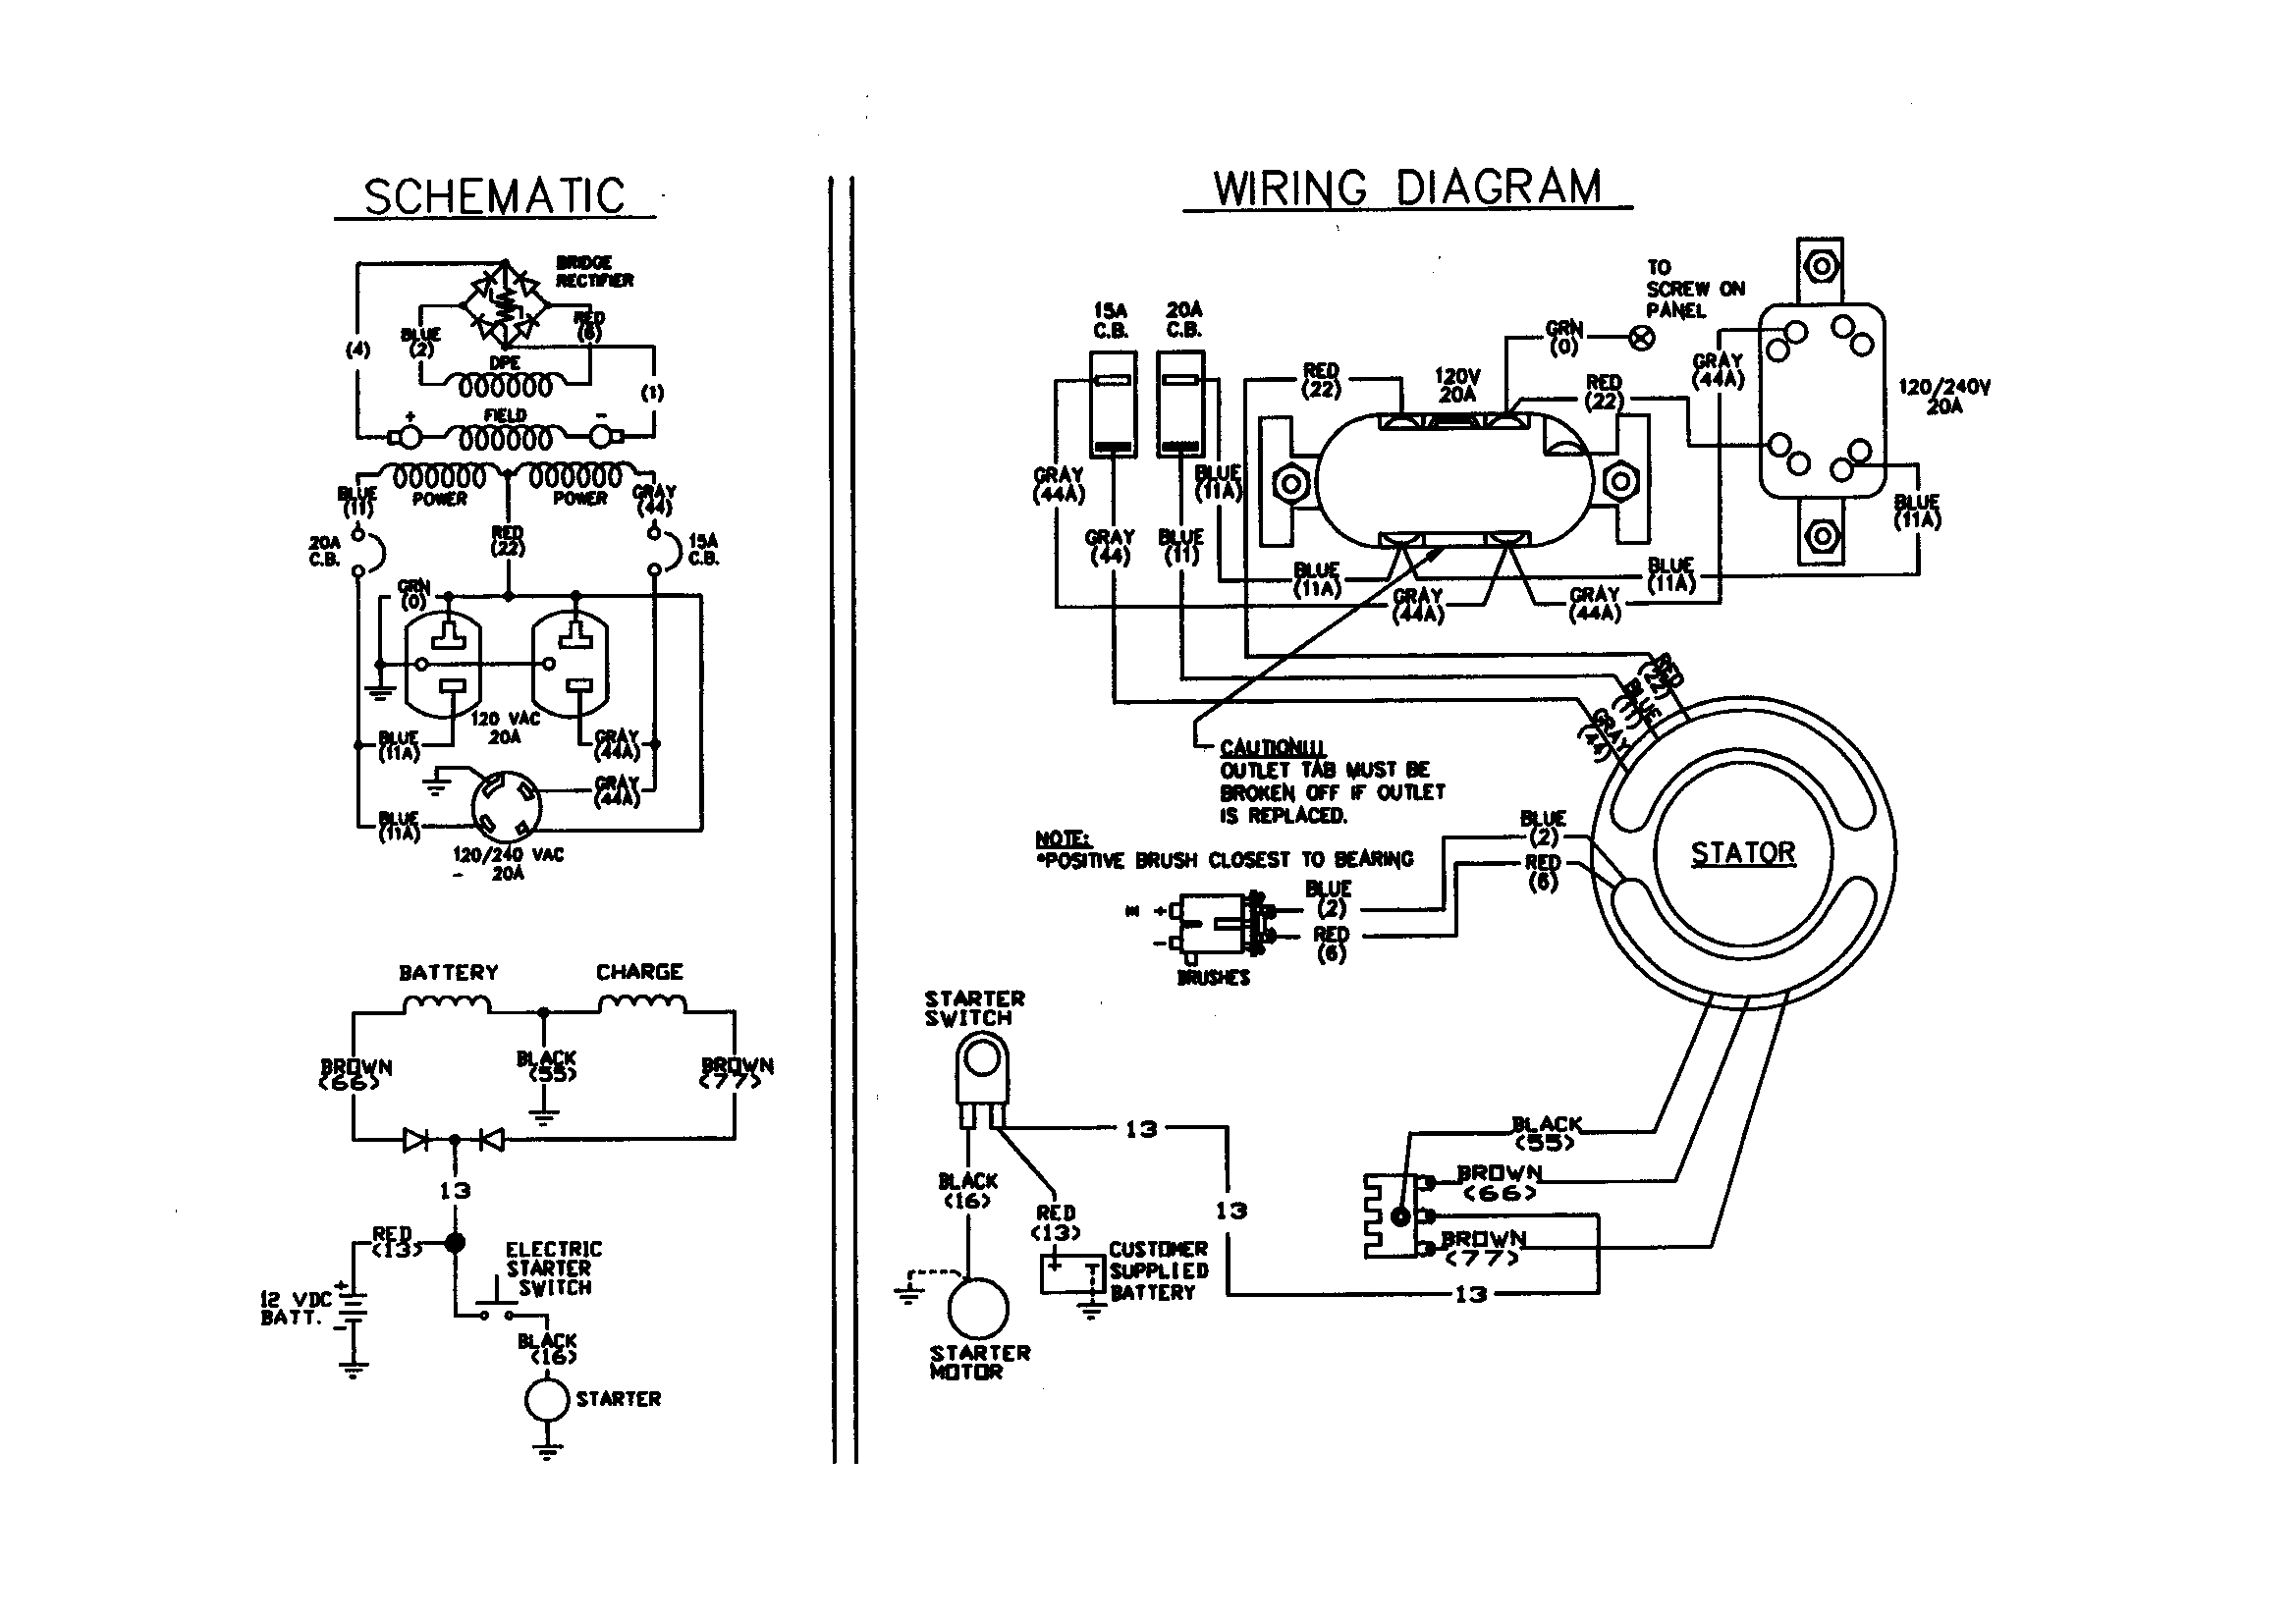 wiring diagram generator set diagram diagramtemplate wiring diagram generator transfer switch wiring diagram generator set [ 2338 x 1648 Pixel ]